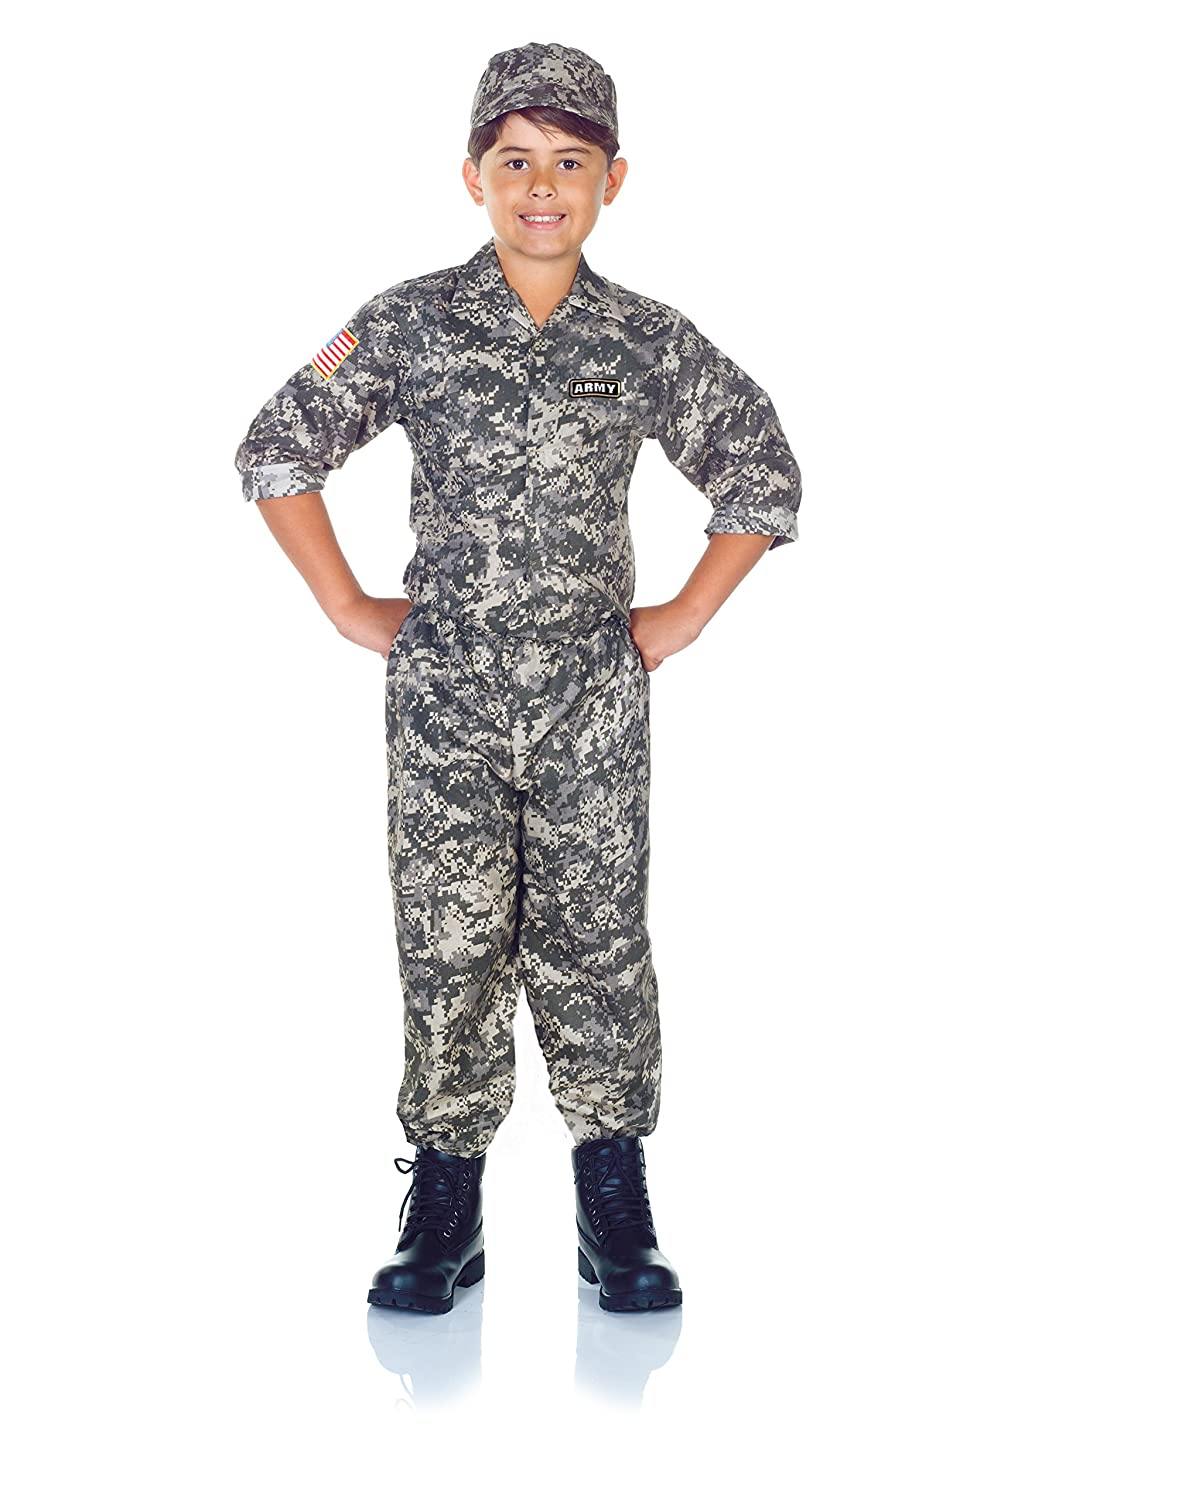 ffc910b49f0d5 AUTHENTIC ARMY RANGER costume is made to look like the real deal, watch as  your child transforms themselves to look like a real heroic Army Ranger.